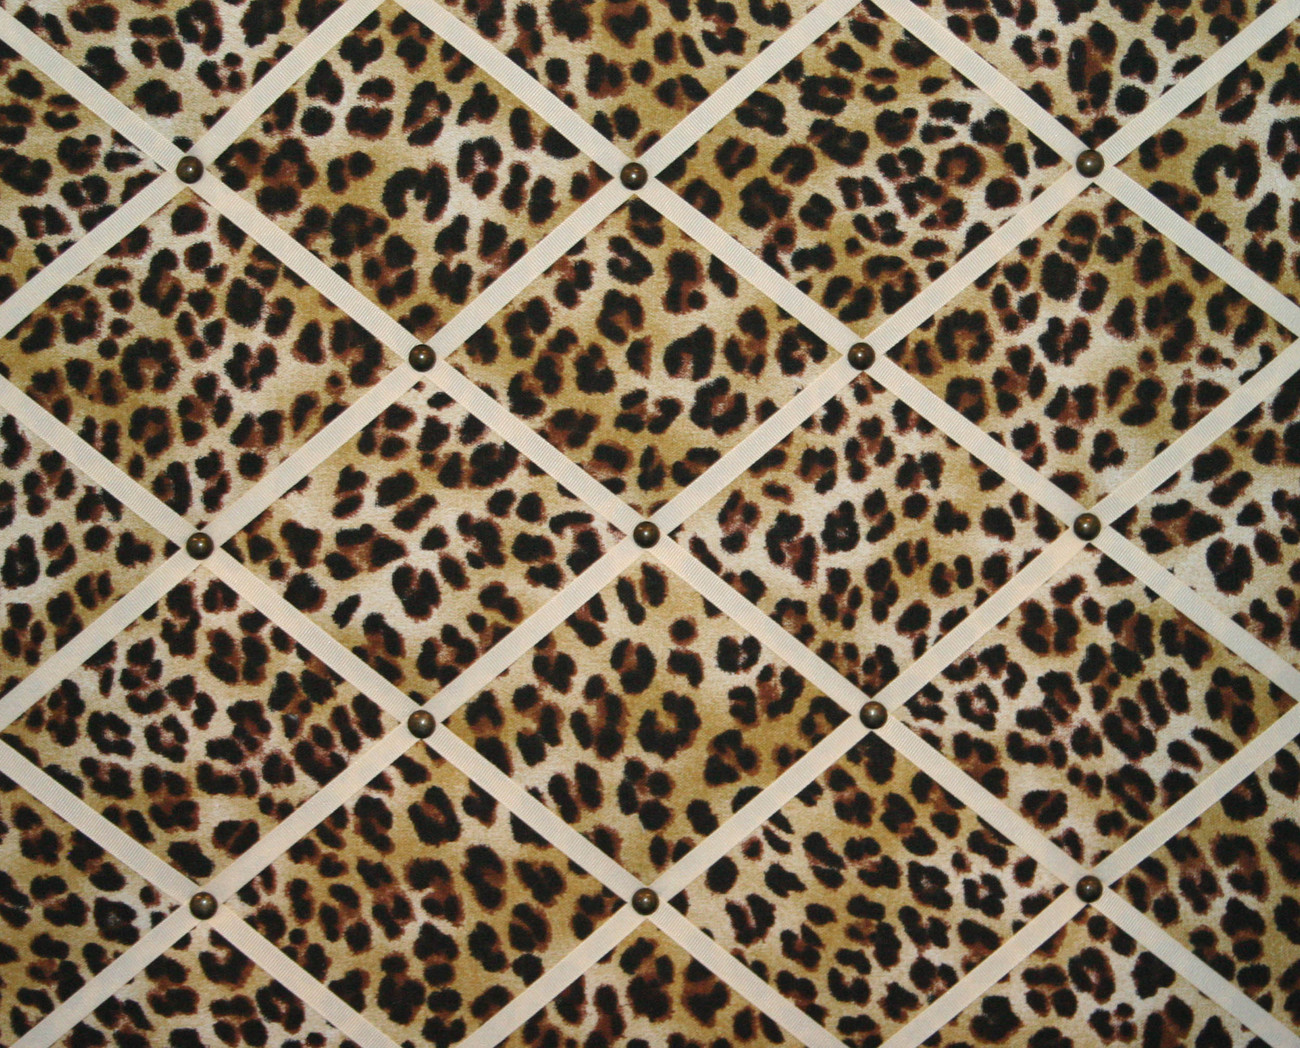 Cheetah print - Wallpaper Bit